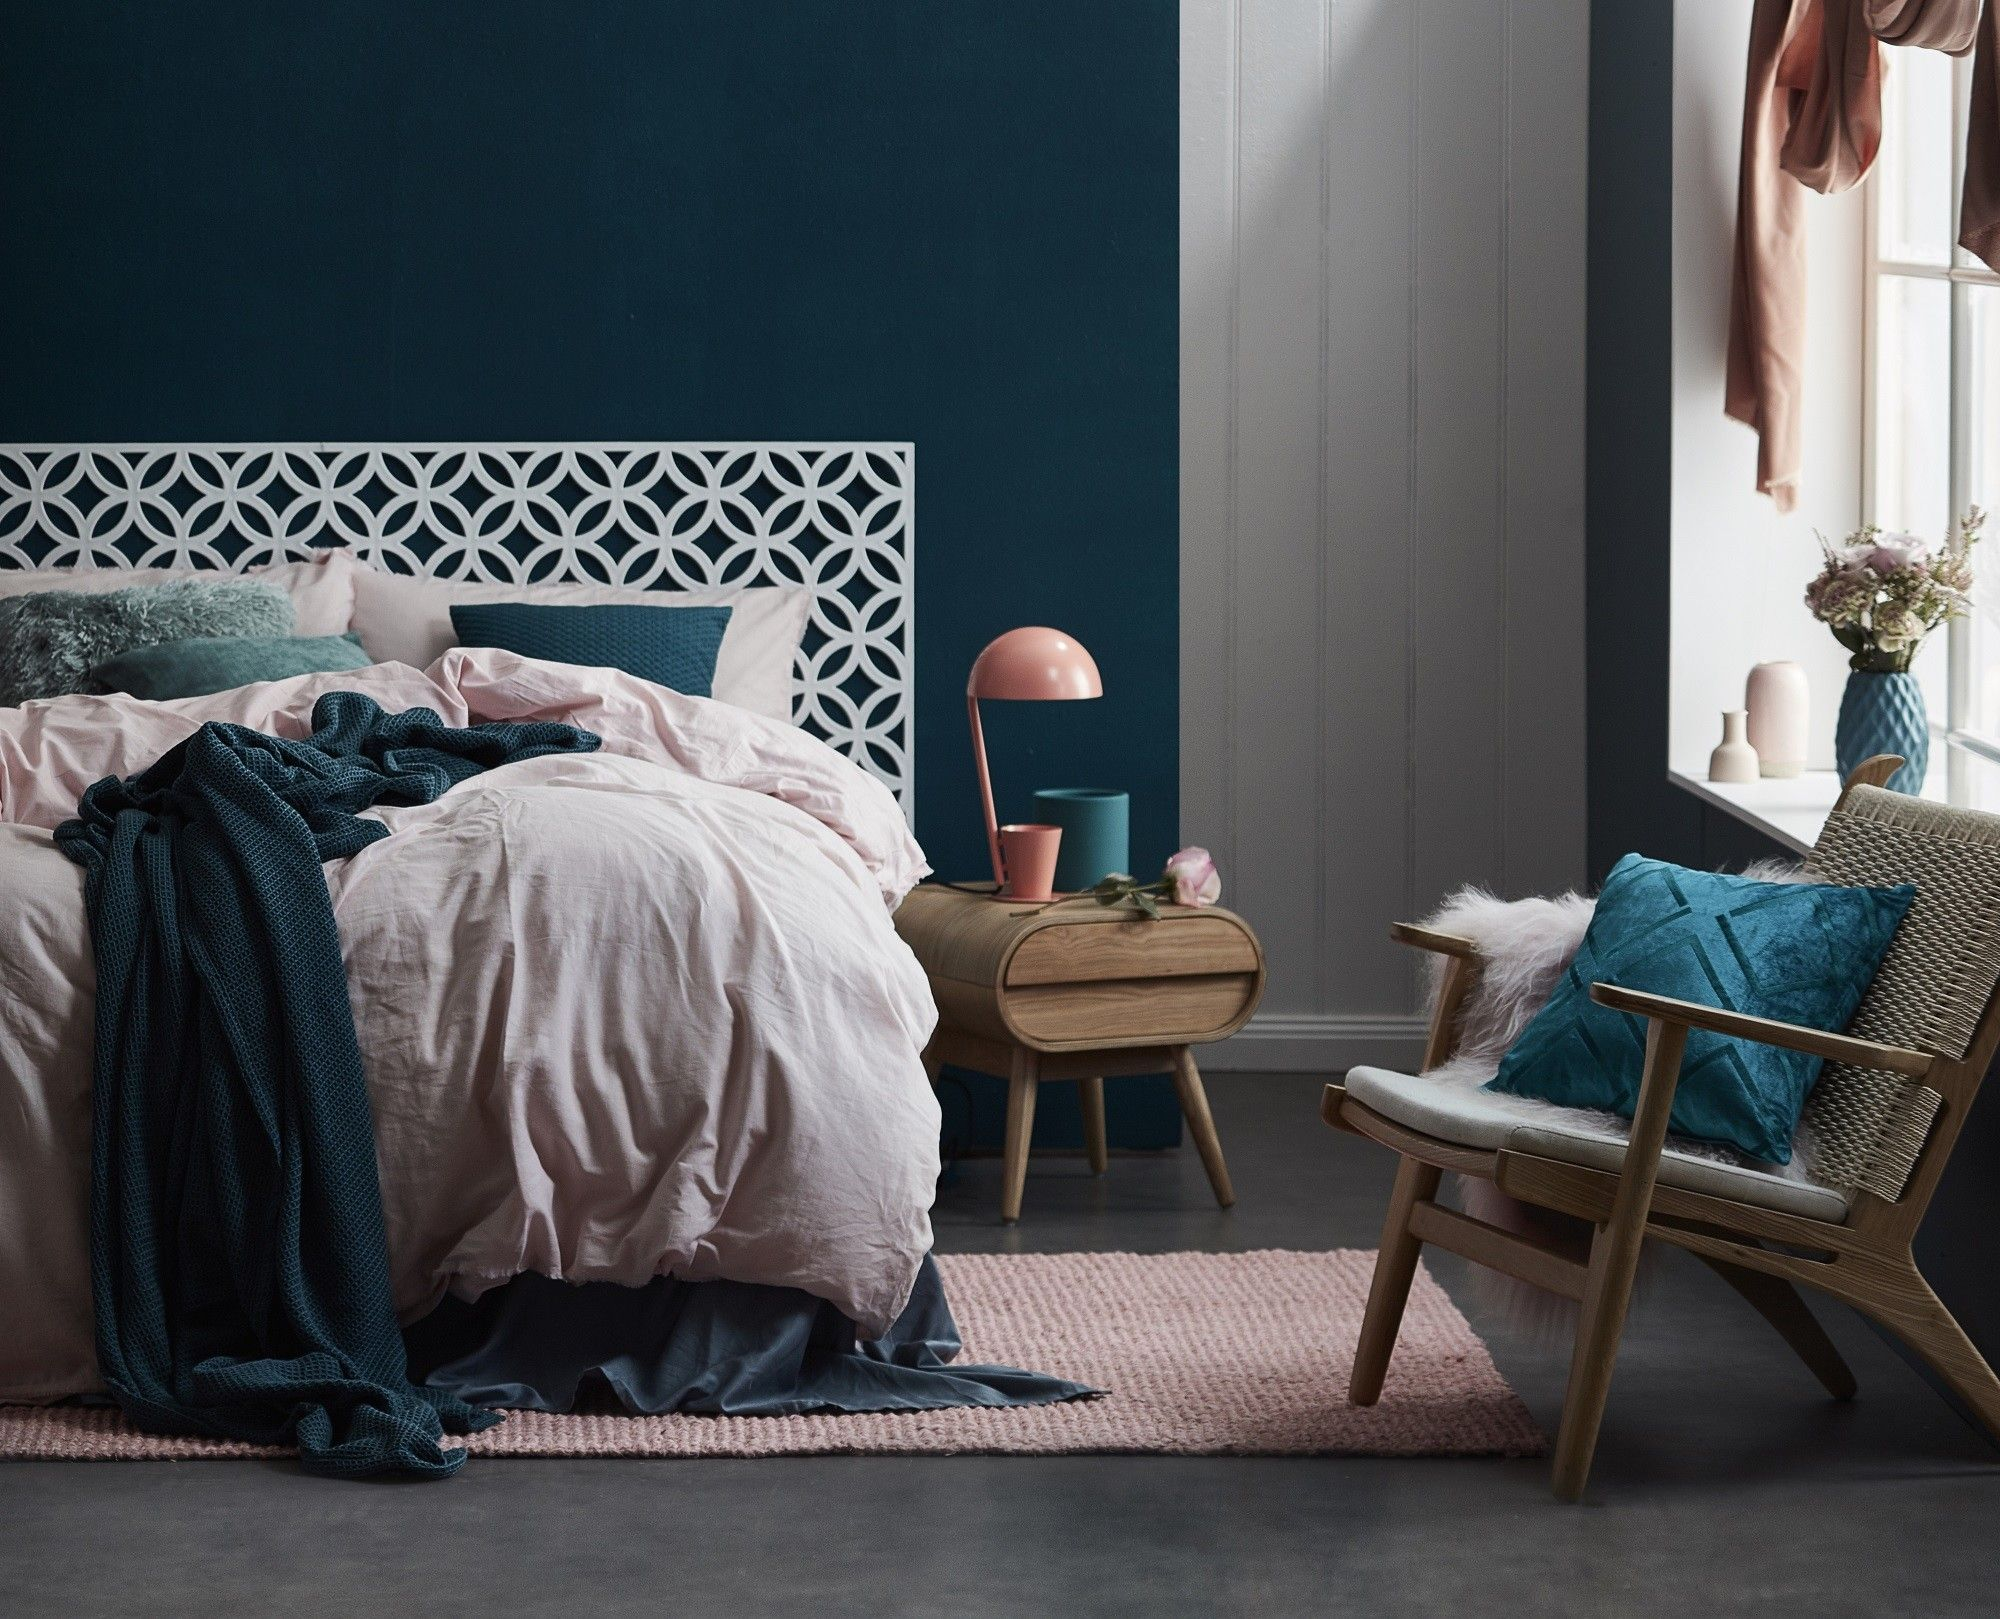 Max Jade Cushion Temple Amp Webster In 2019 Bedroom